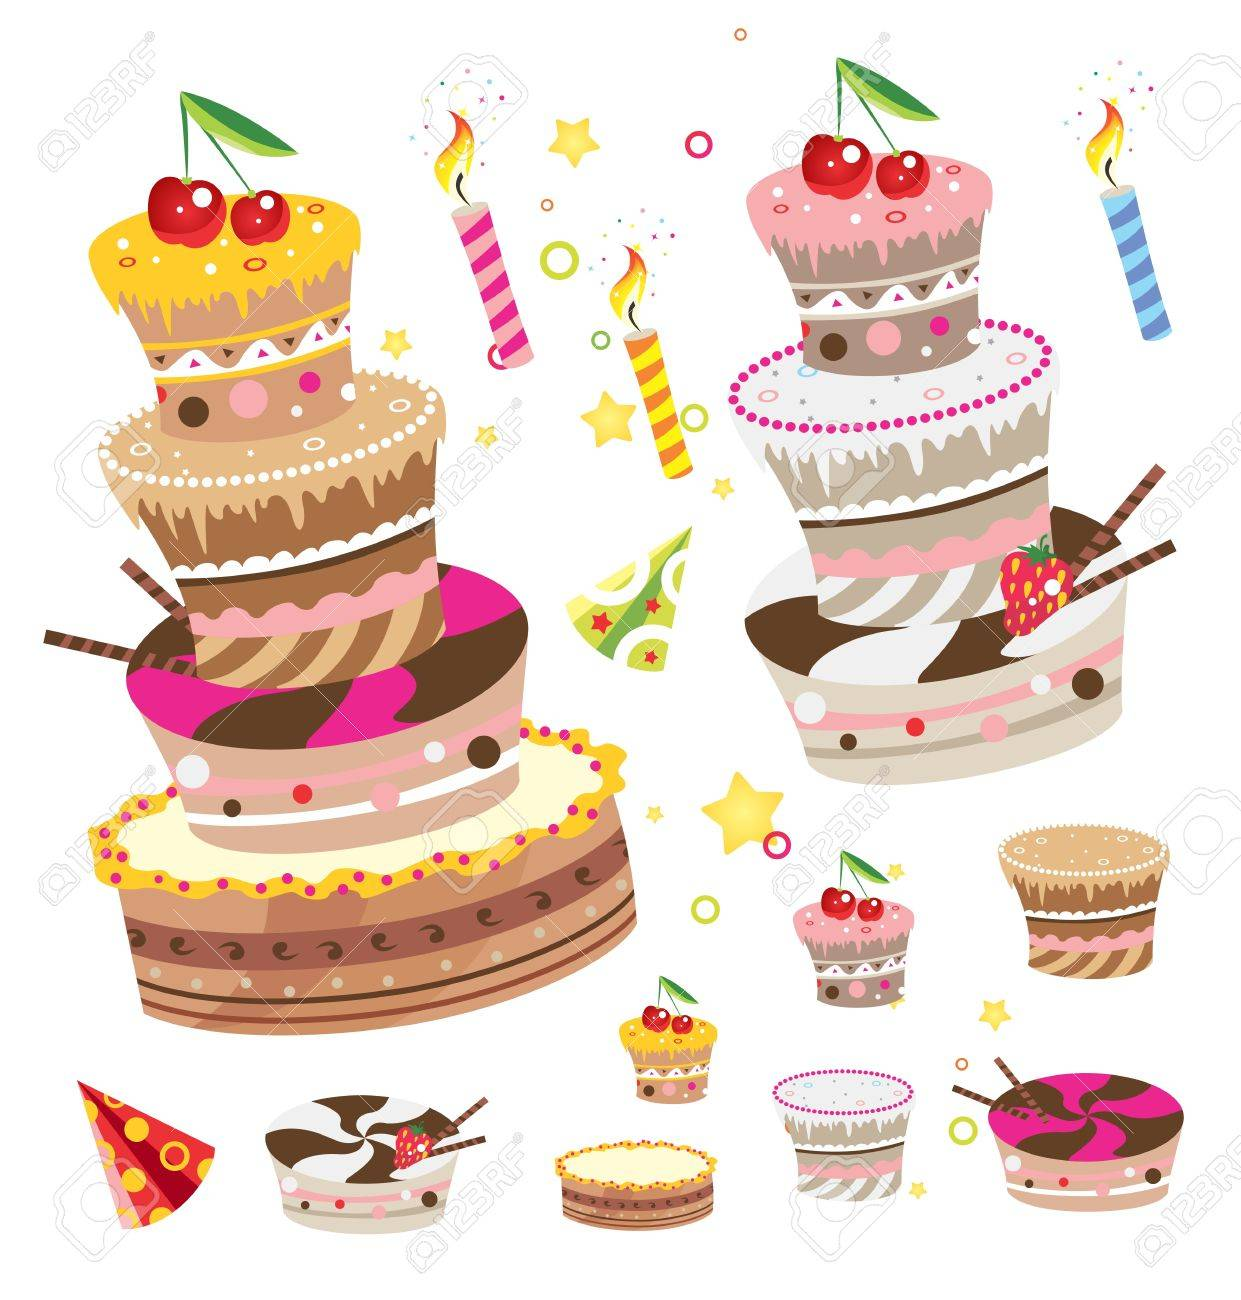 Birthday Pies And Cakes Design Elements Set Stock Vector